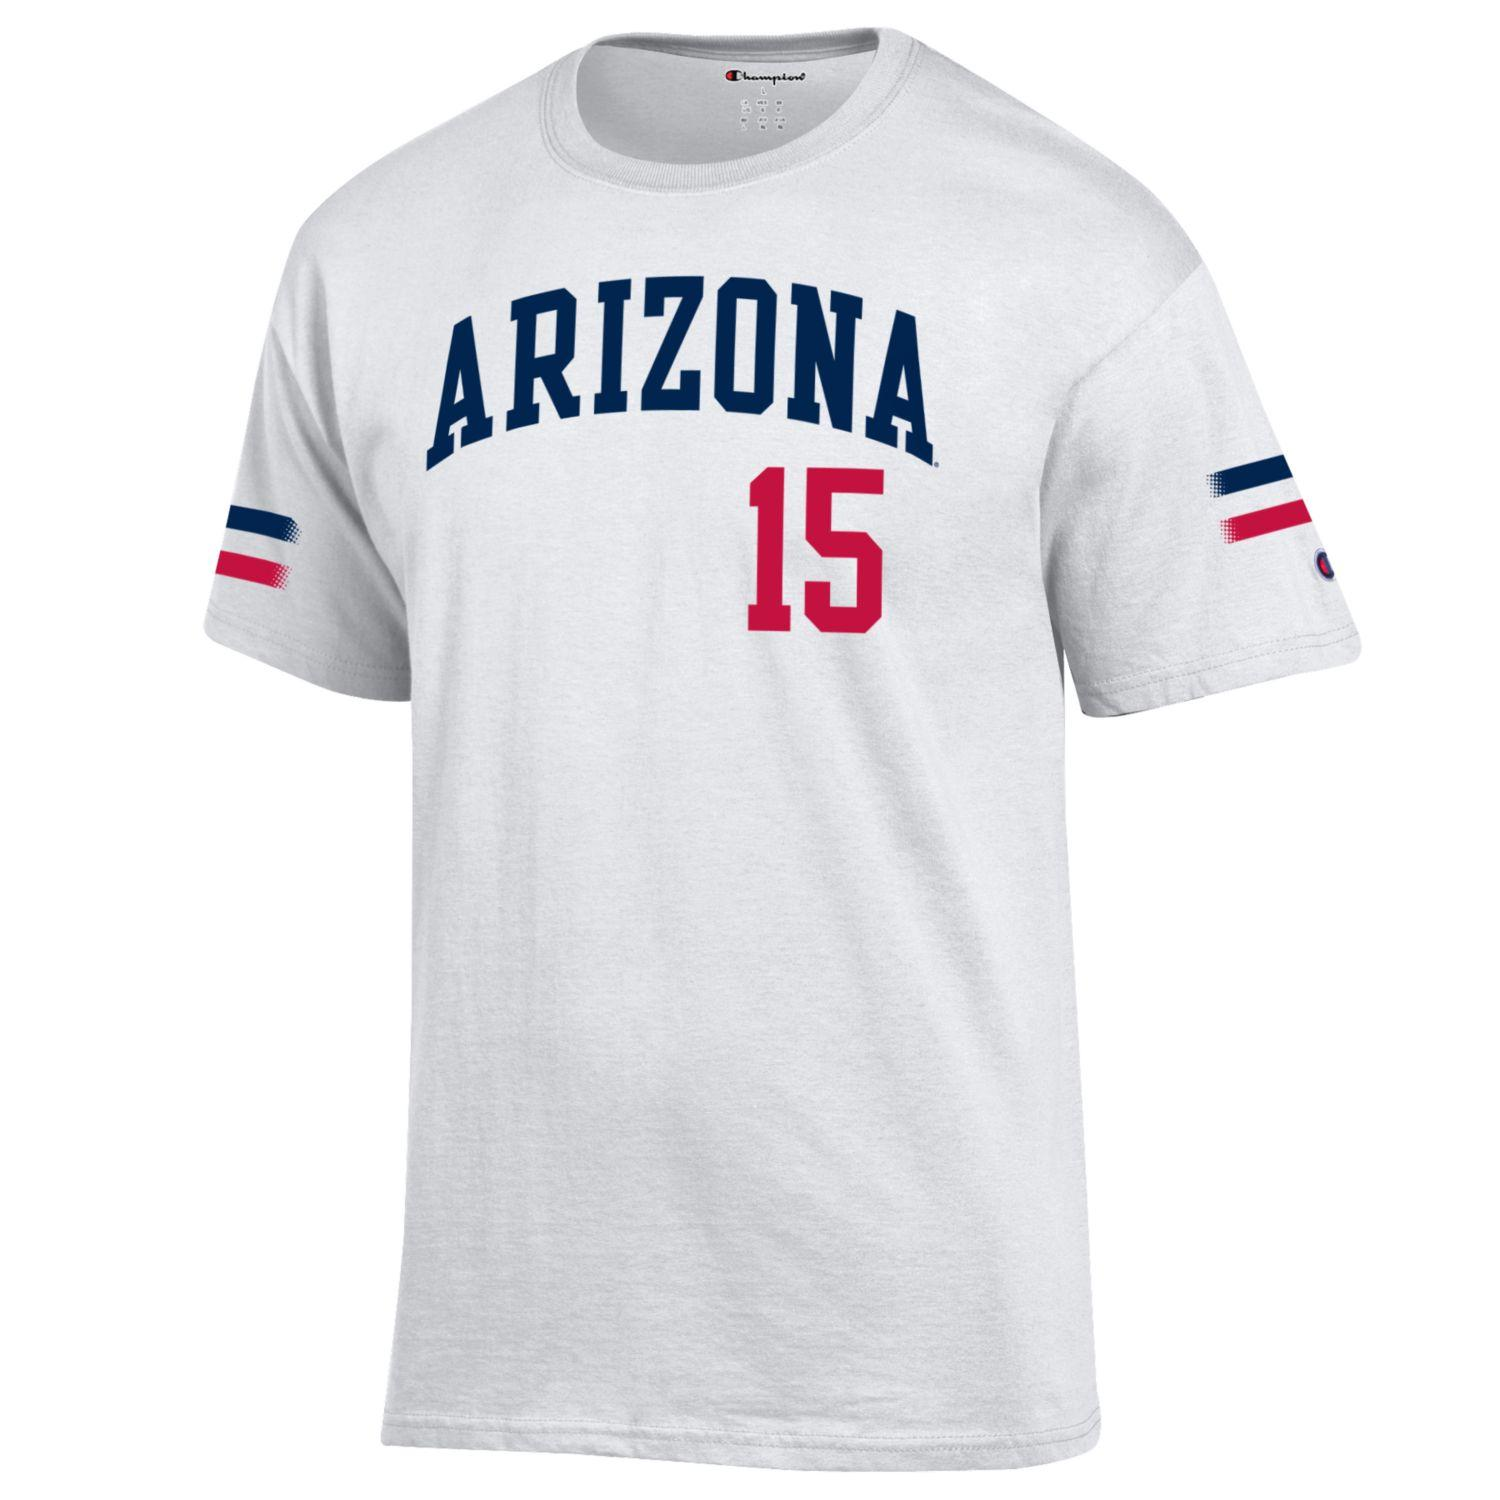 Cover Image For Champion: Arizona Trevor Hoffman #15 White Tee